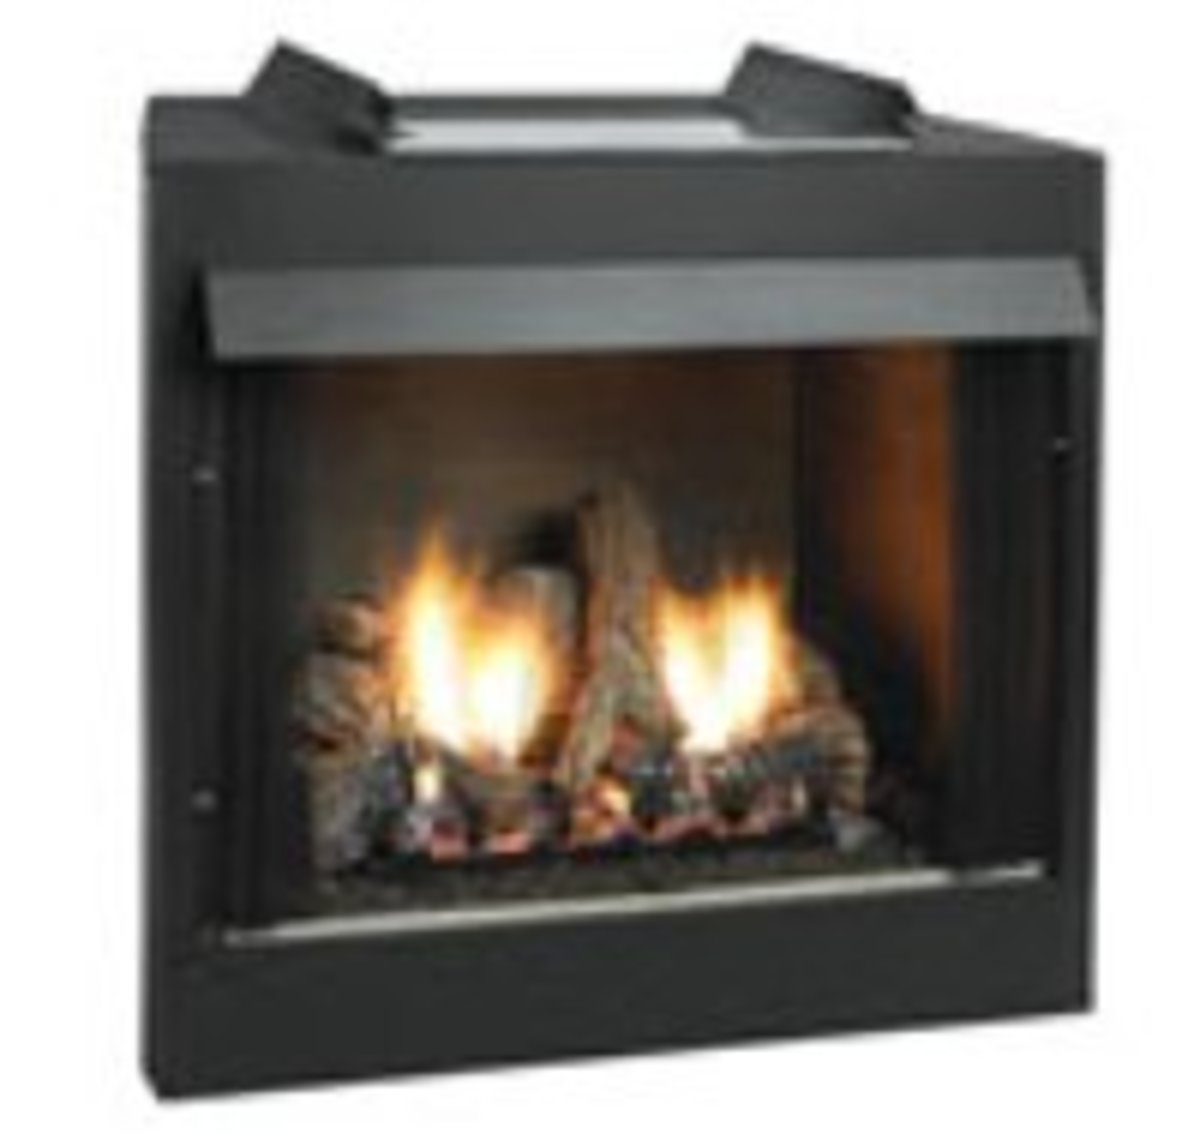 Ventless gas log fireplace fire box keeps heat where it belongs and can be completely hidden inside a mantle or custom built into a wall.